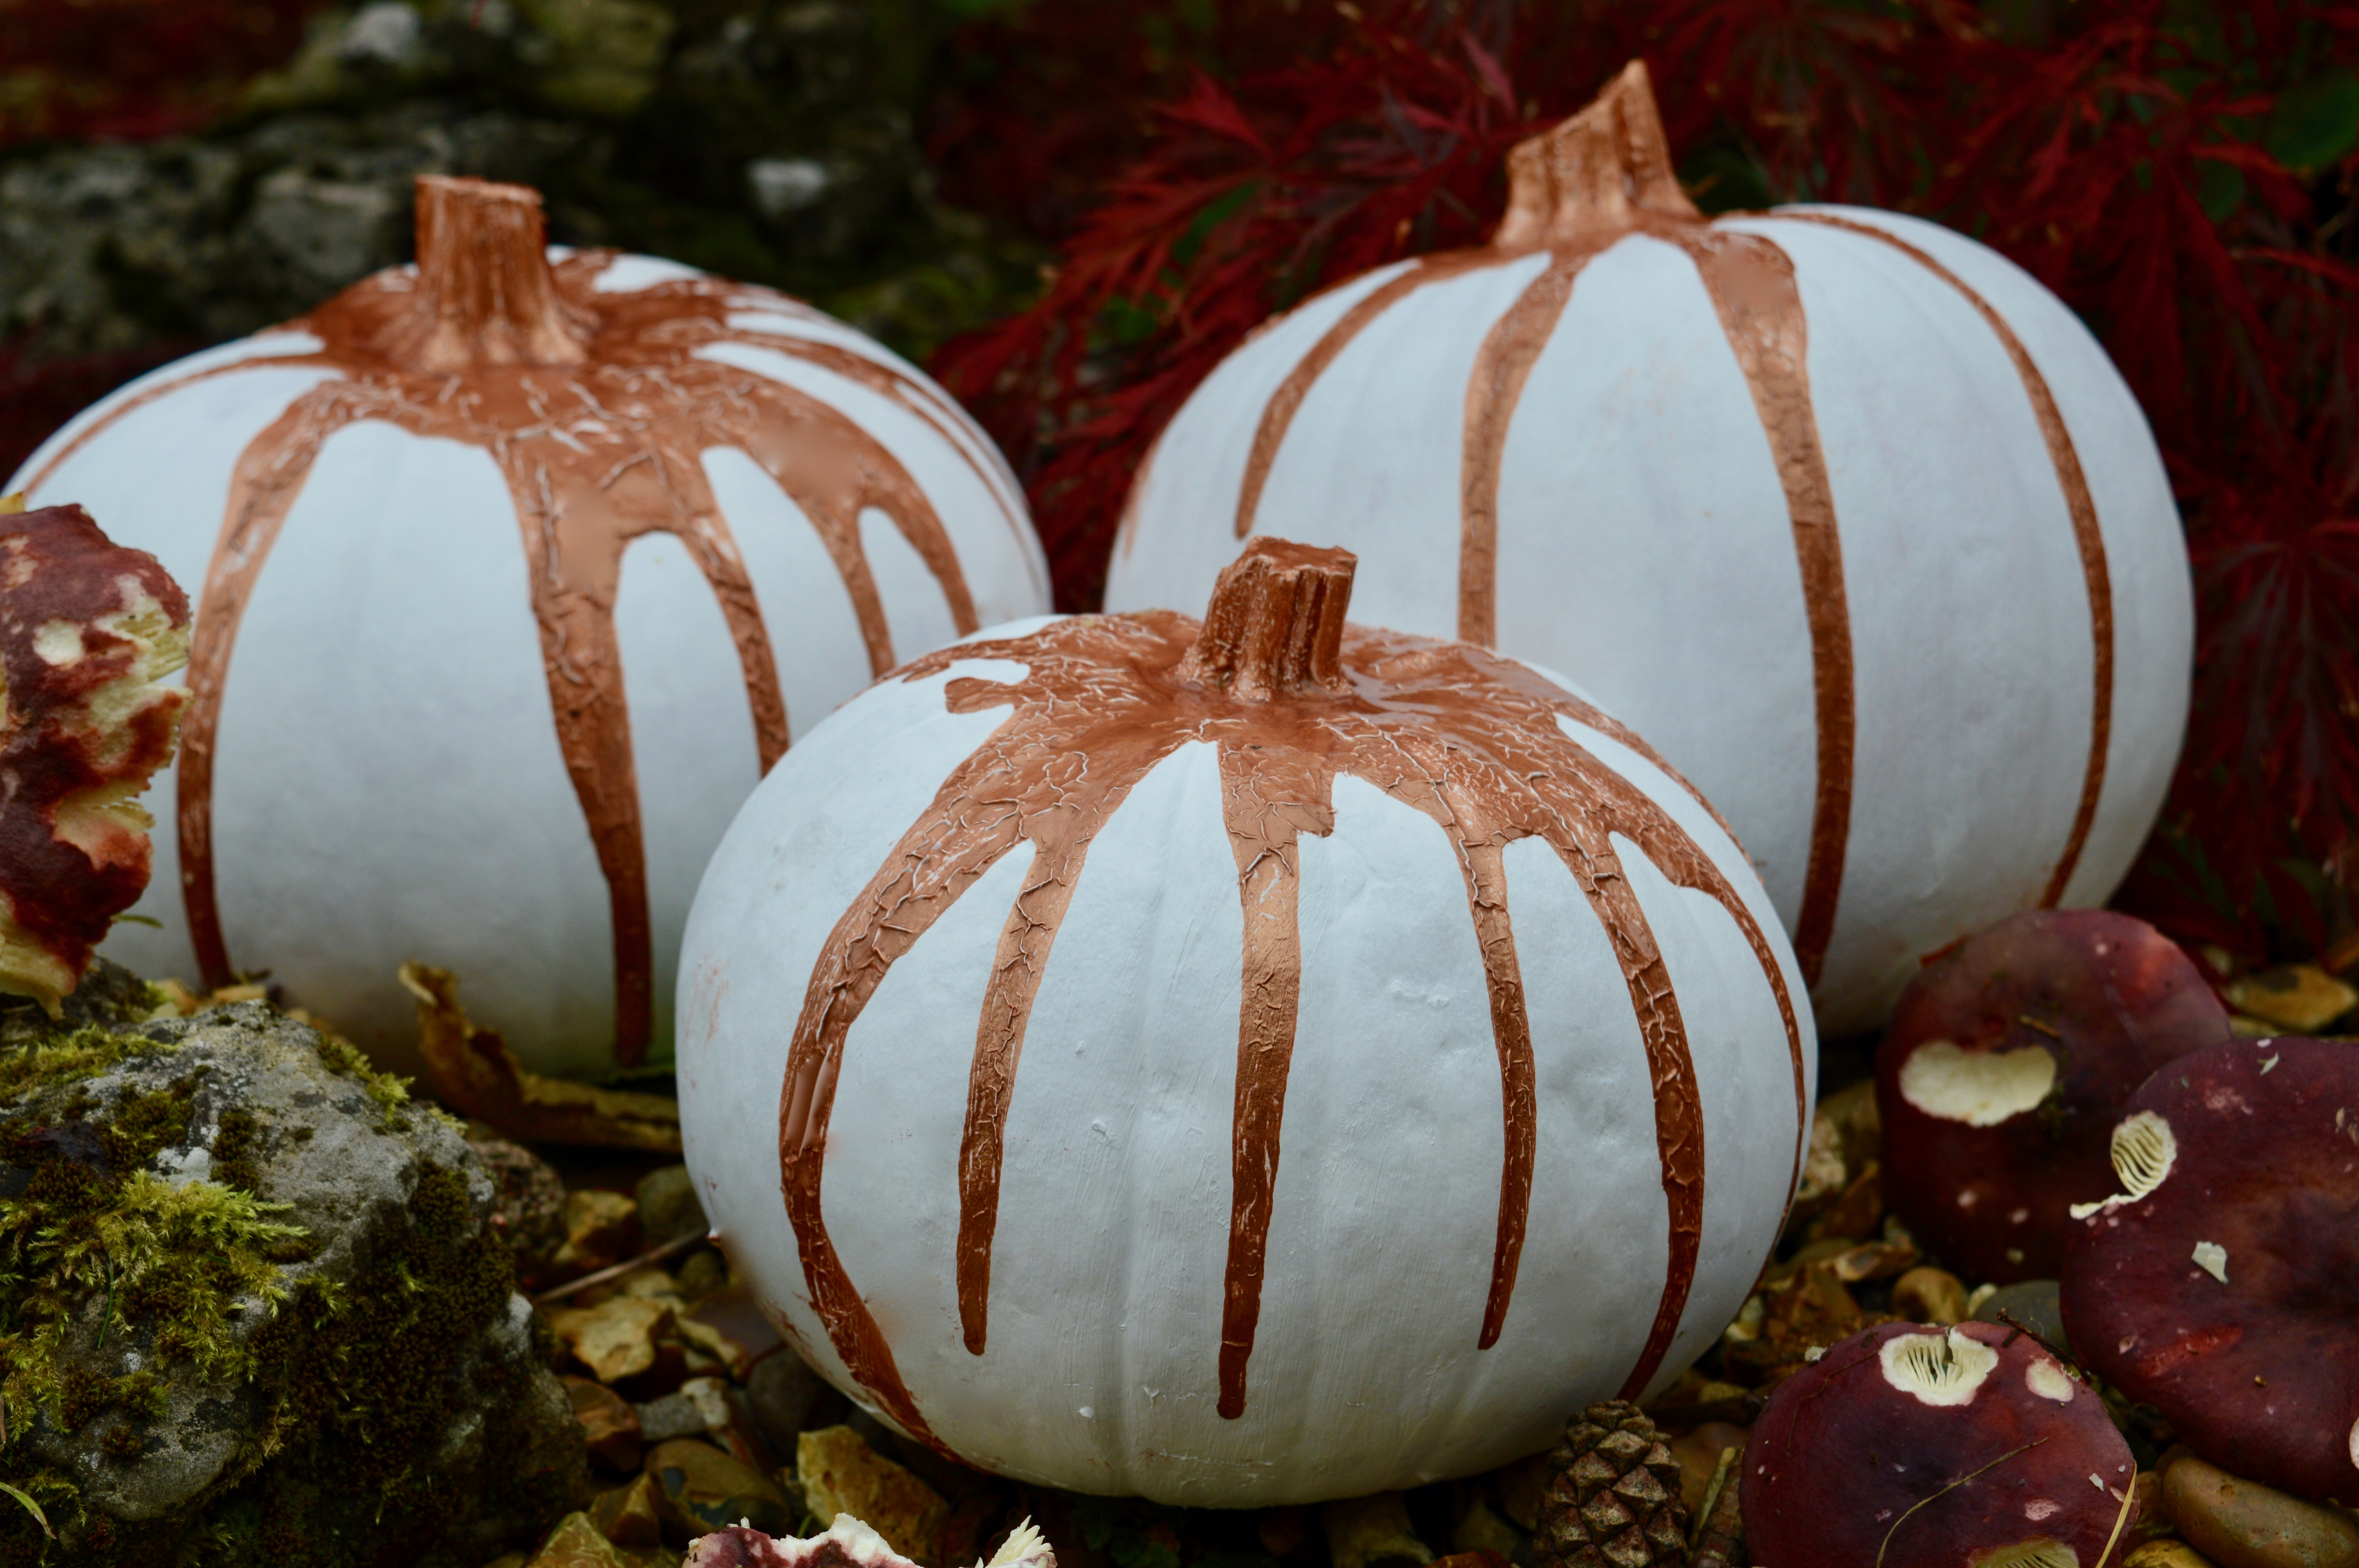 How to paint a pumpkin   Home Interiors   DIY Craft Project   White & Rose Gold   Elle Blonde Luxury Lifestyle Destination Blog